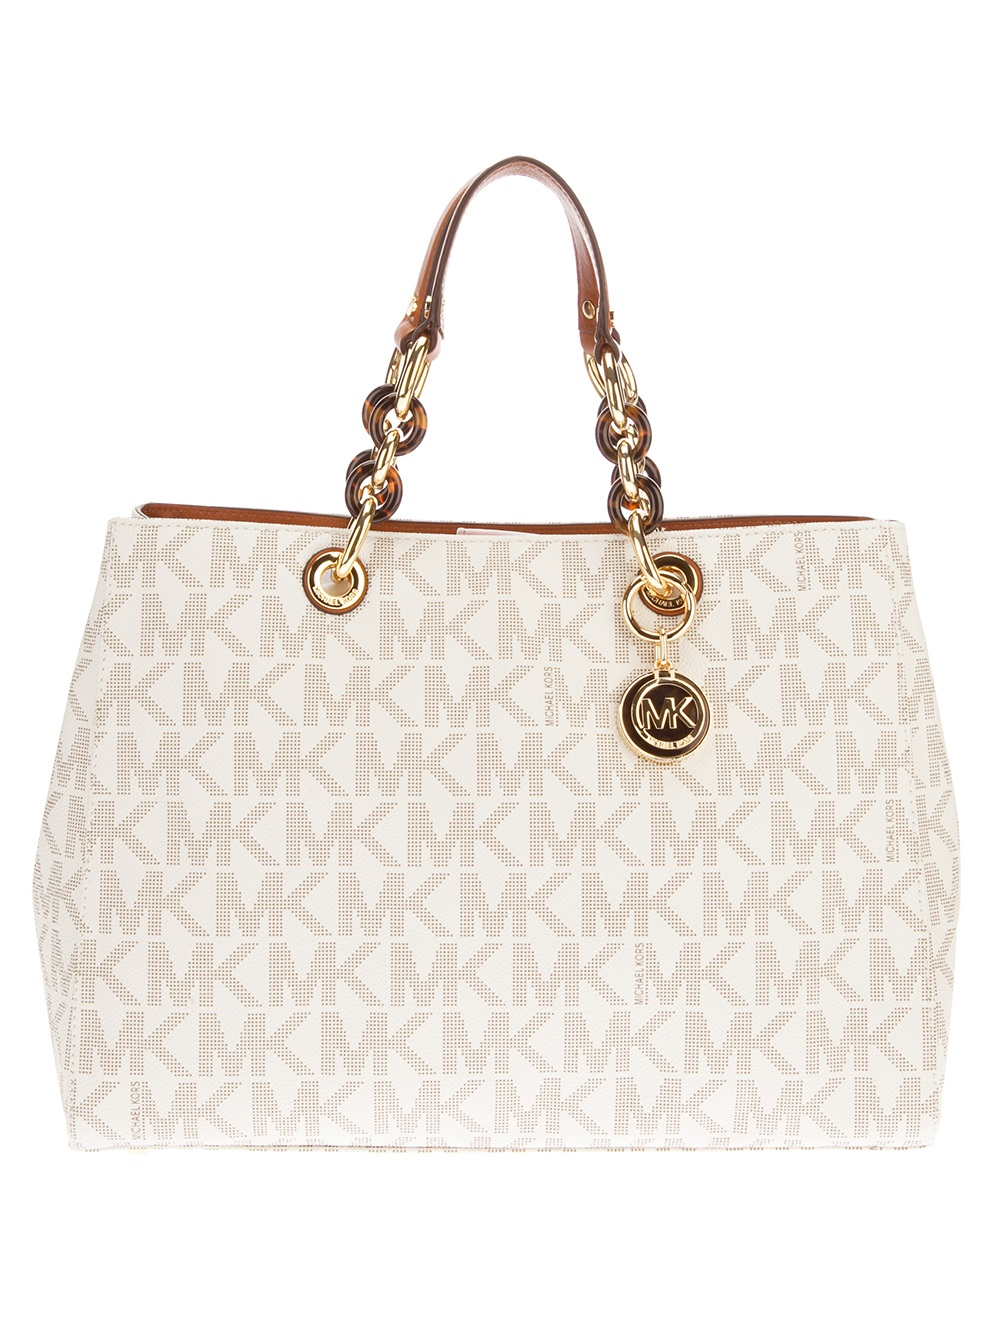 9c84ad3218e0 Gallery. Previously sold at: Farfetch · Women's Michael By Michael Kors  Cynthia